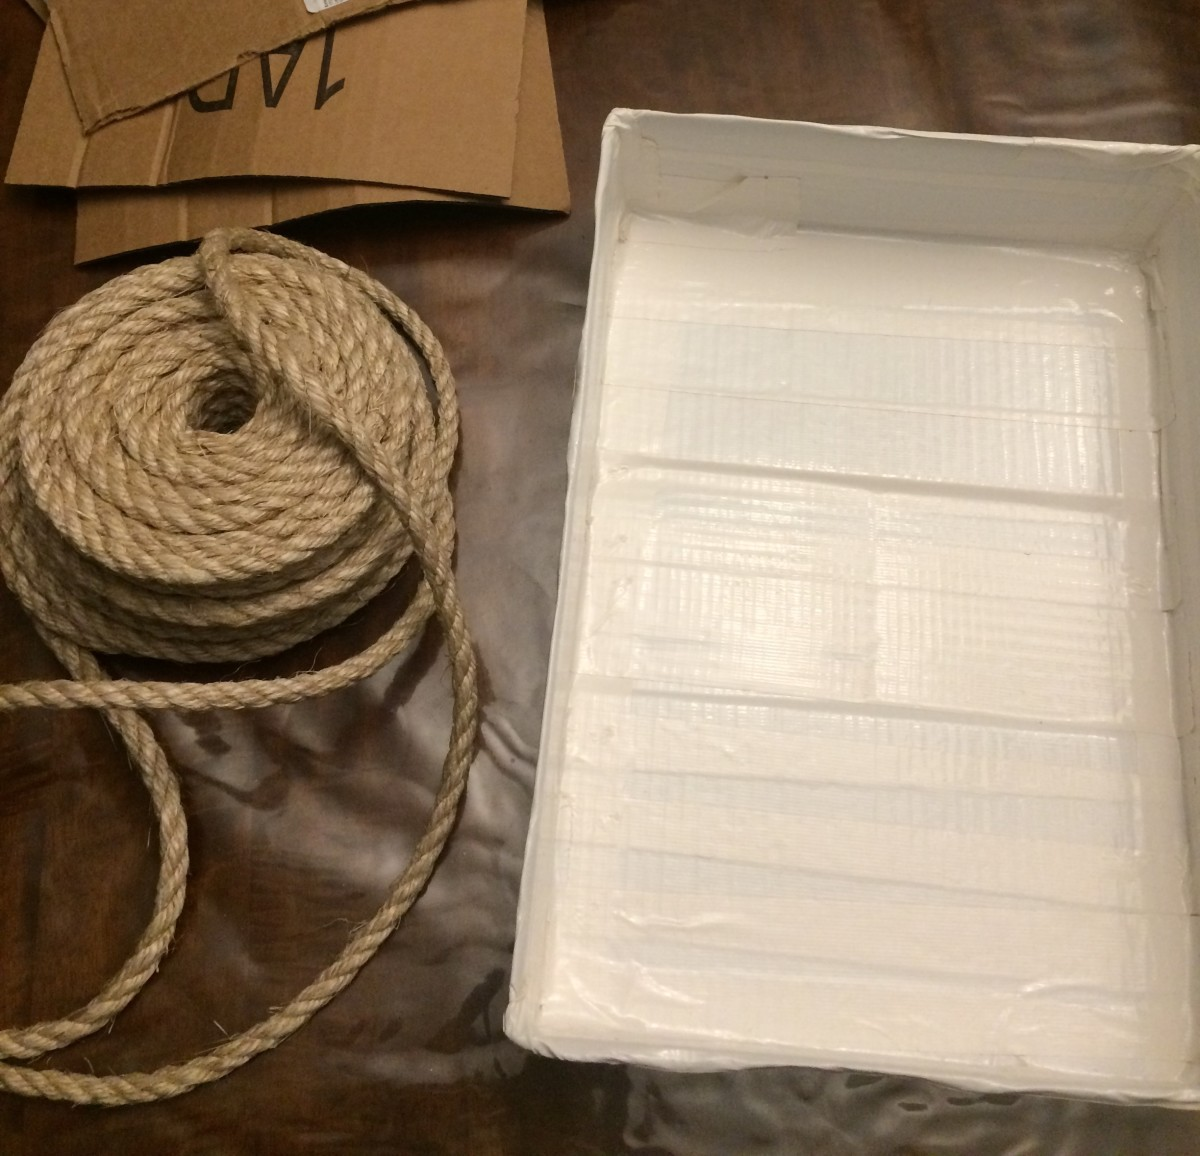 Sisal Rope and Form I used, just an old cardboard box.